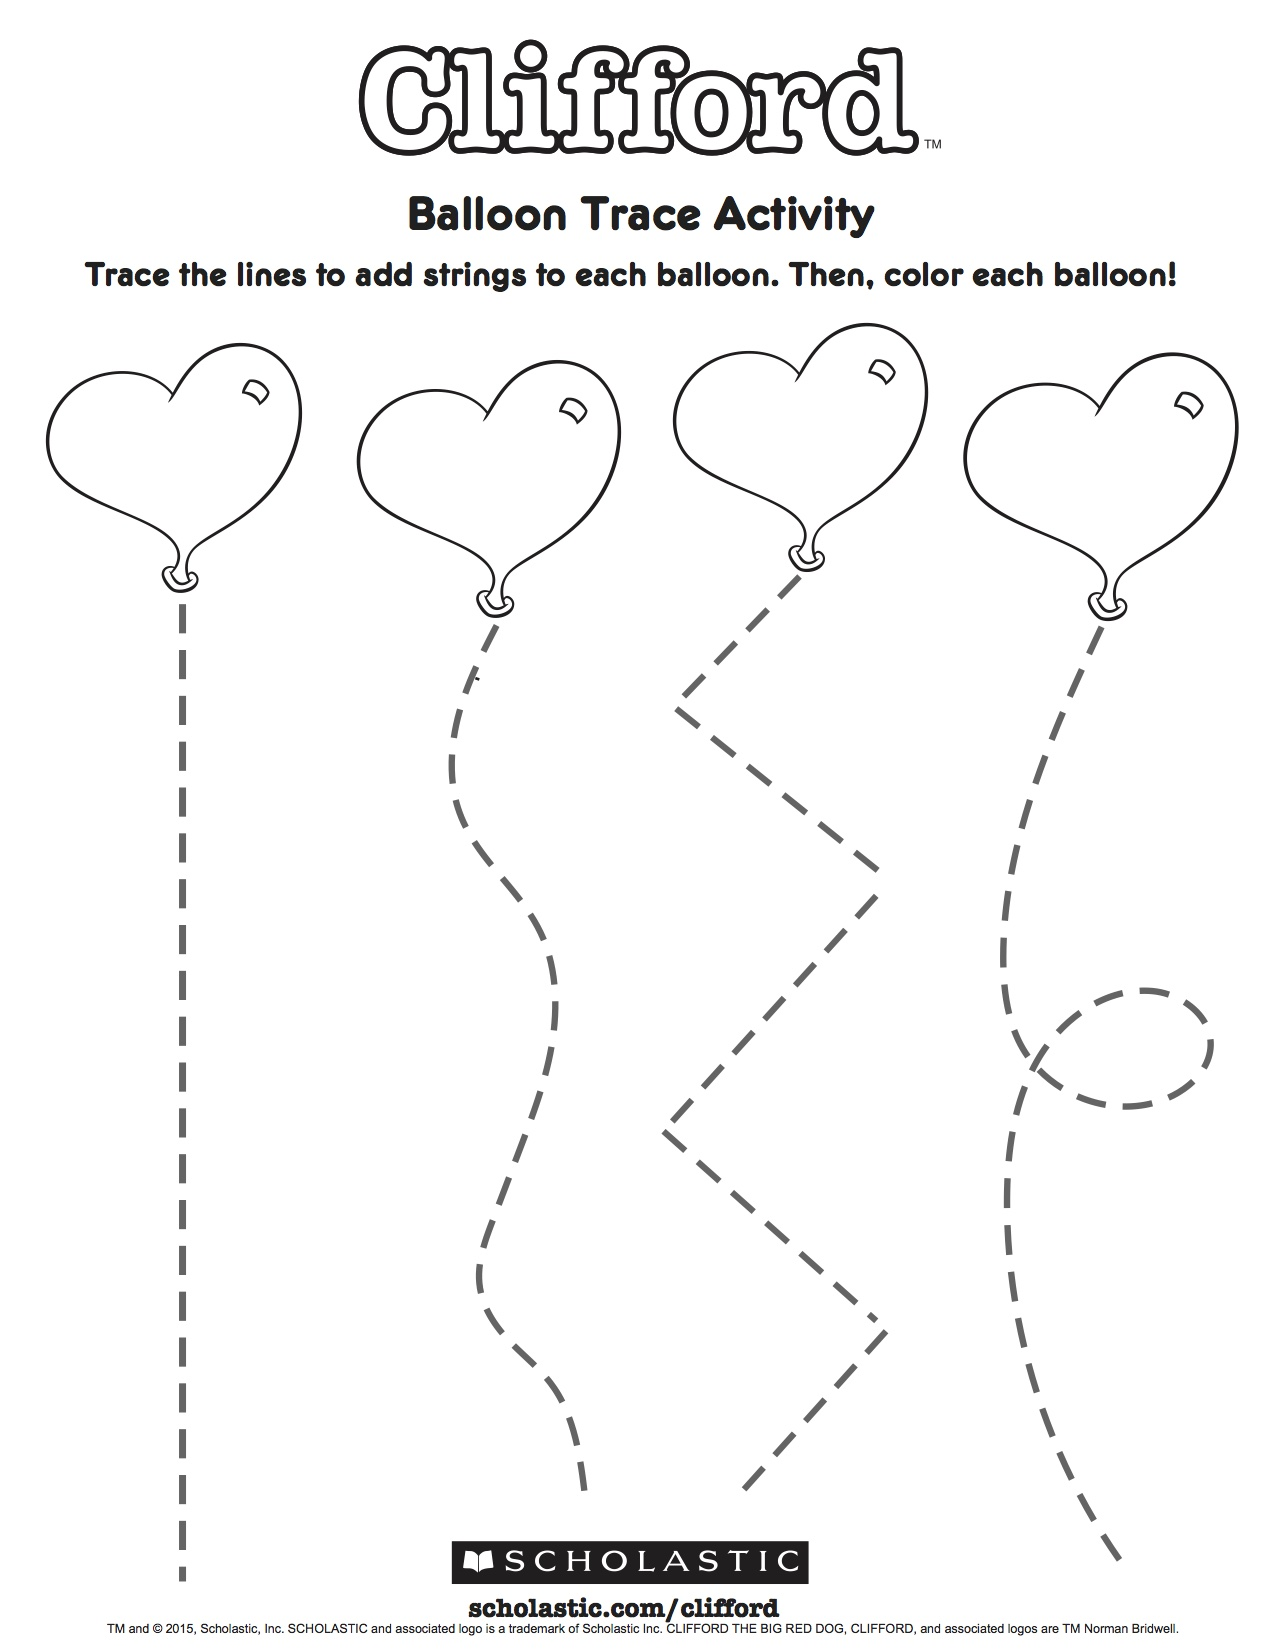 Clifford S Balloon Trace Activity